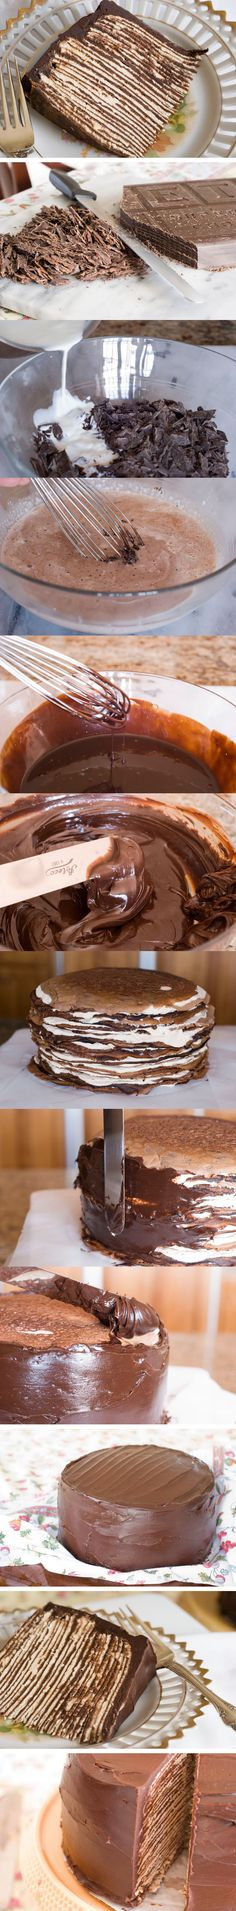 Tarta de crepes con chocolate - no recipe, but looks like all you need are some crepes and ganache Sweet Desserts, Just Desserts, Sweet Recipes, Delicious Desserts, Dessert Recipes, Yummy Food, Yummy Treats, Sweet Treats, Cupcake Cakes